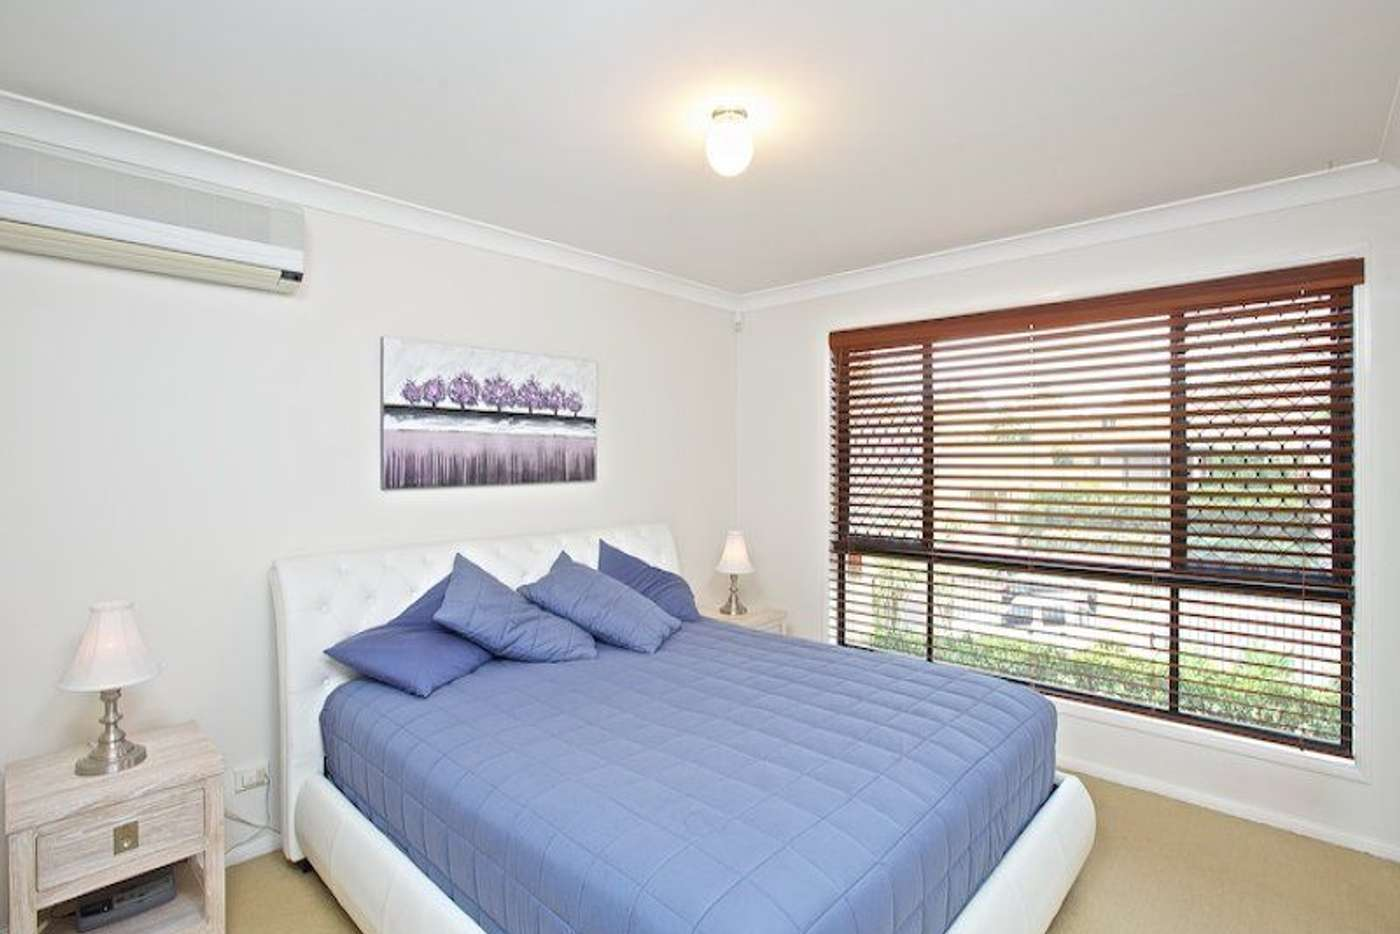 Sixth view of Homely house listing, 35 Ormeau Ridge Road, Ormeau Hills QLD 4208